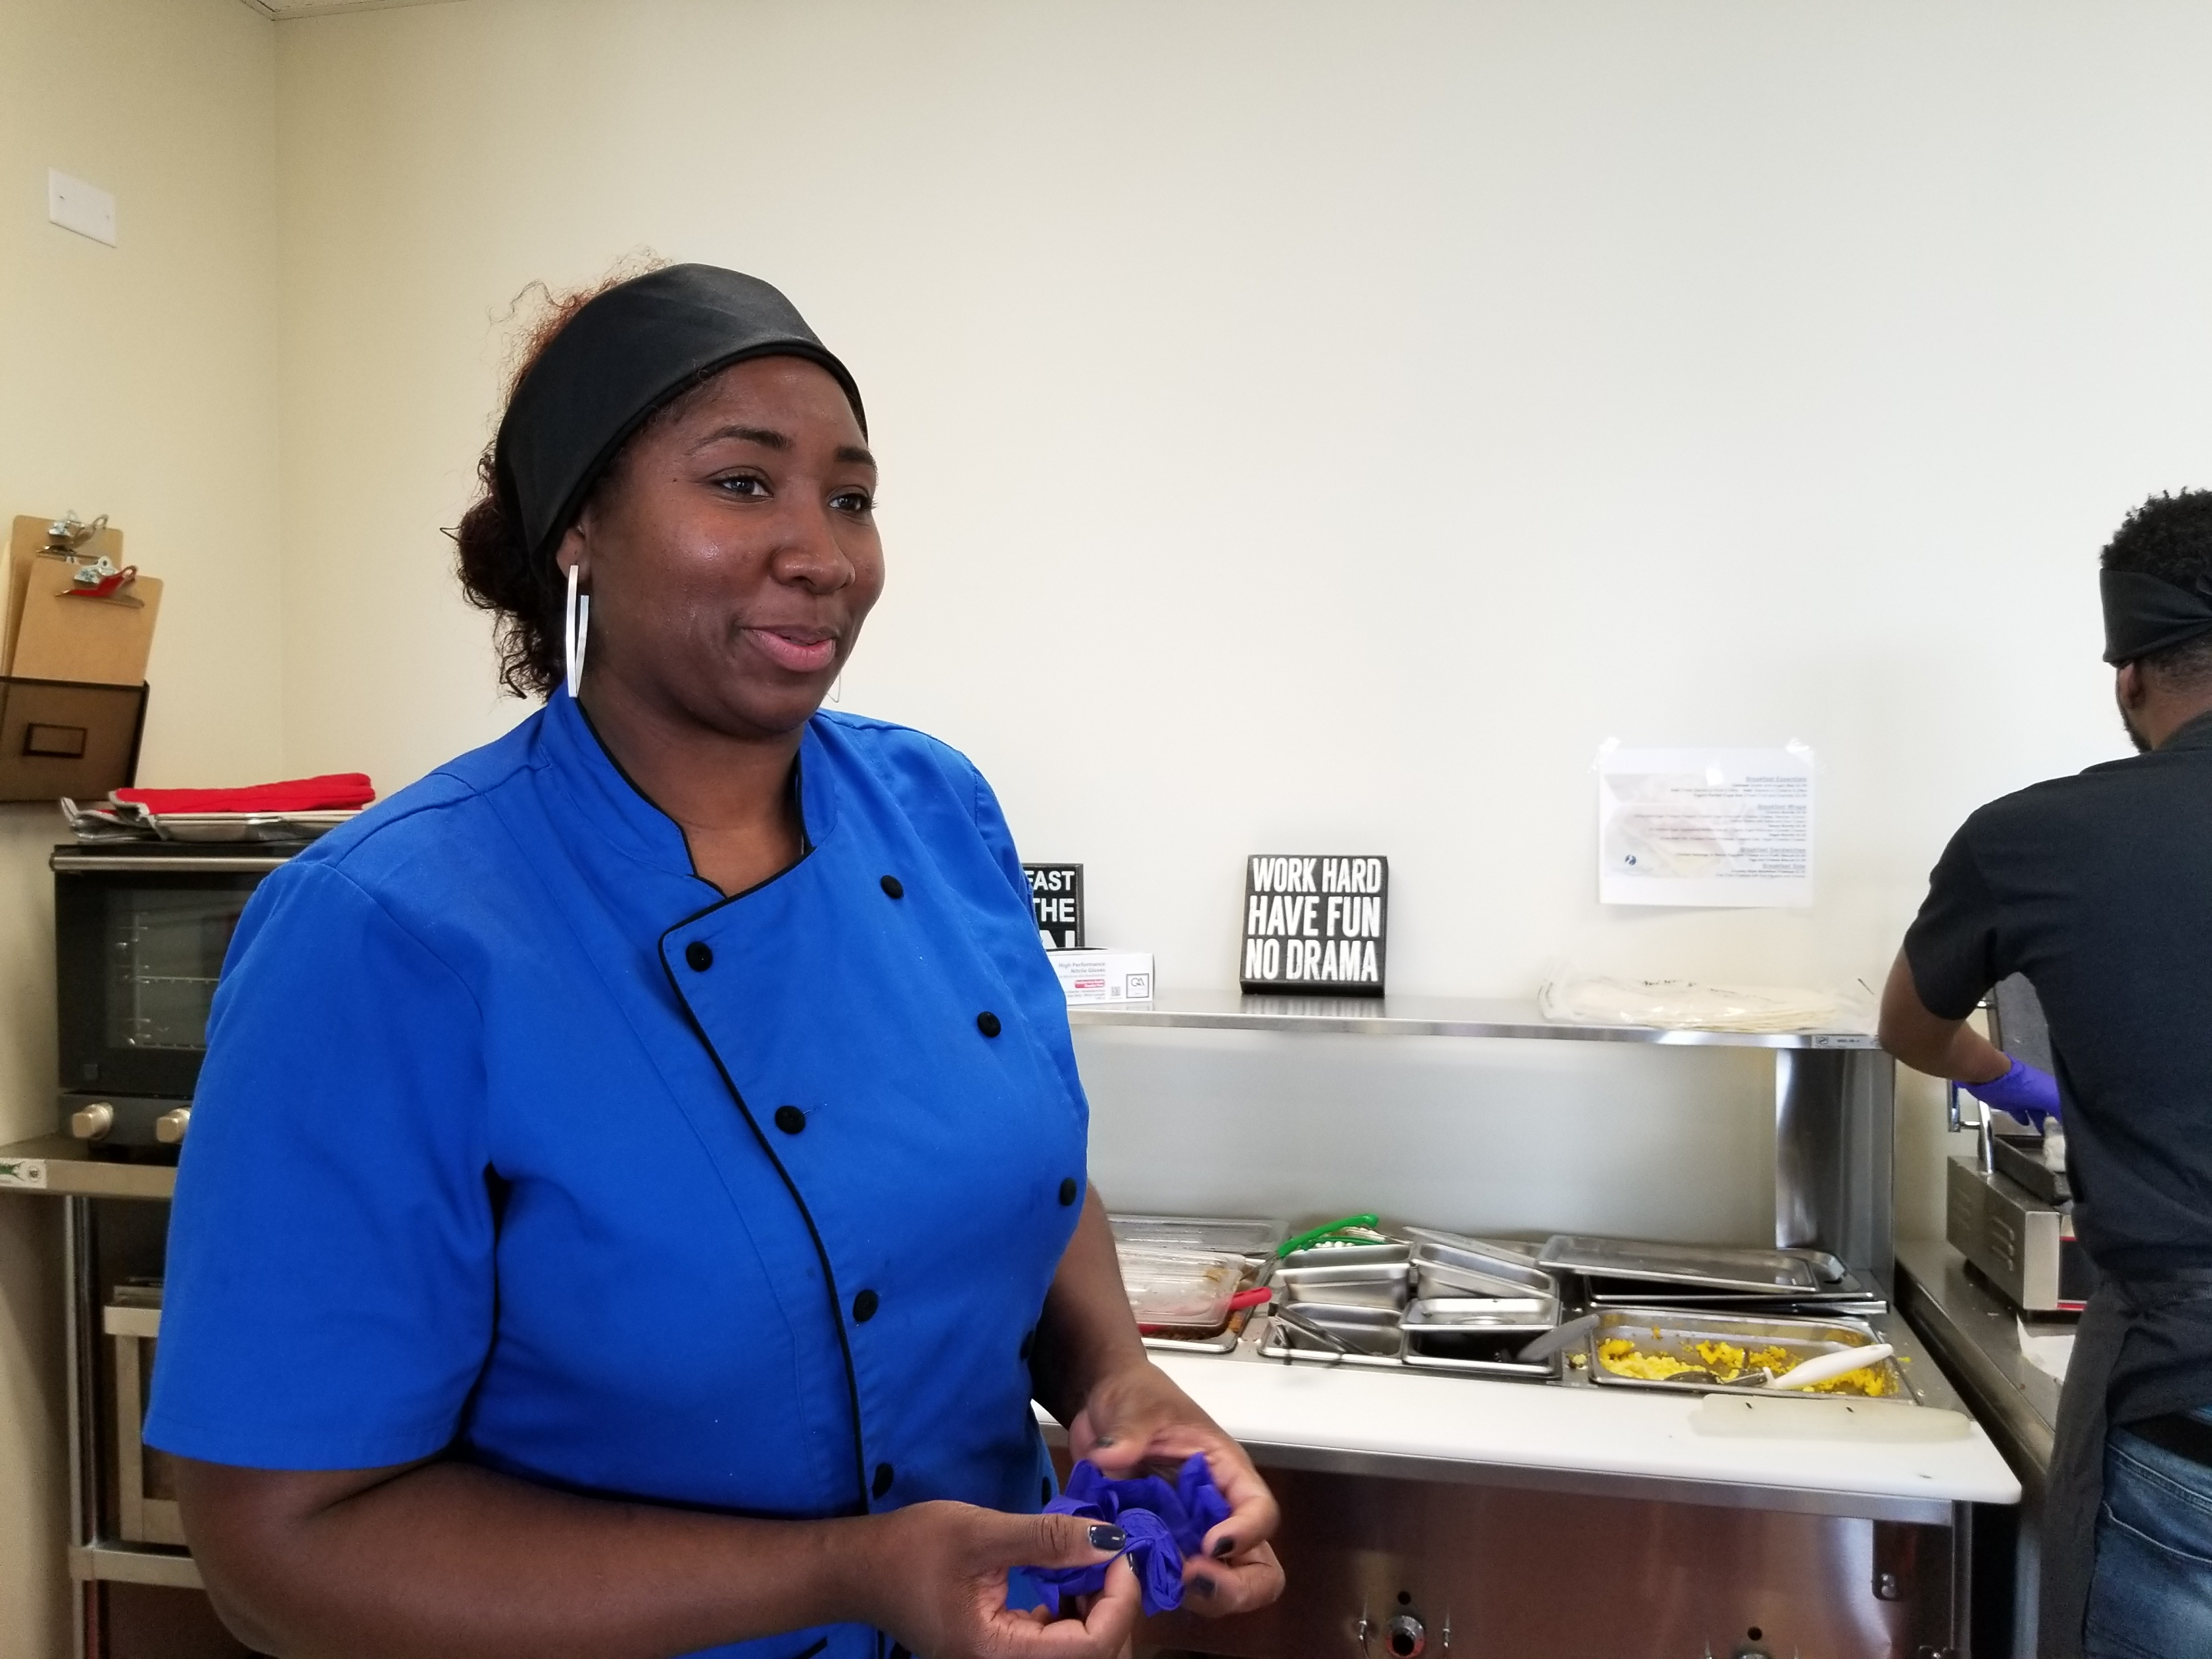 Tiffany Williams of Exquisite To Go has run a catering business for the past two years. She dreams of one day launching a stand-alone restaurant in her native Woodlawn community.